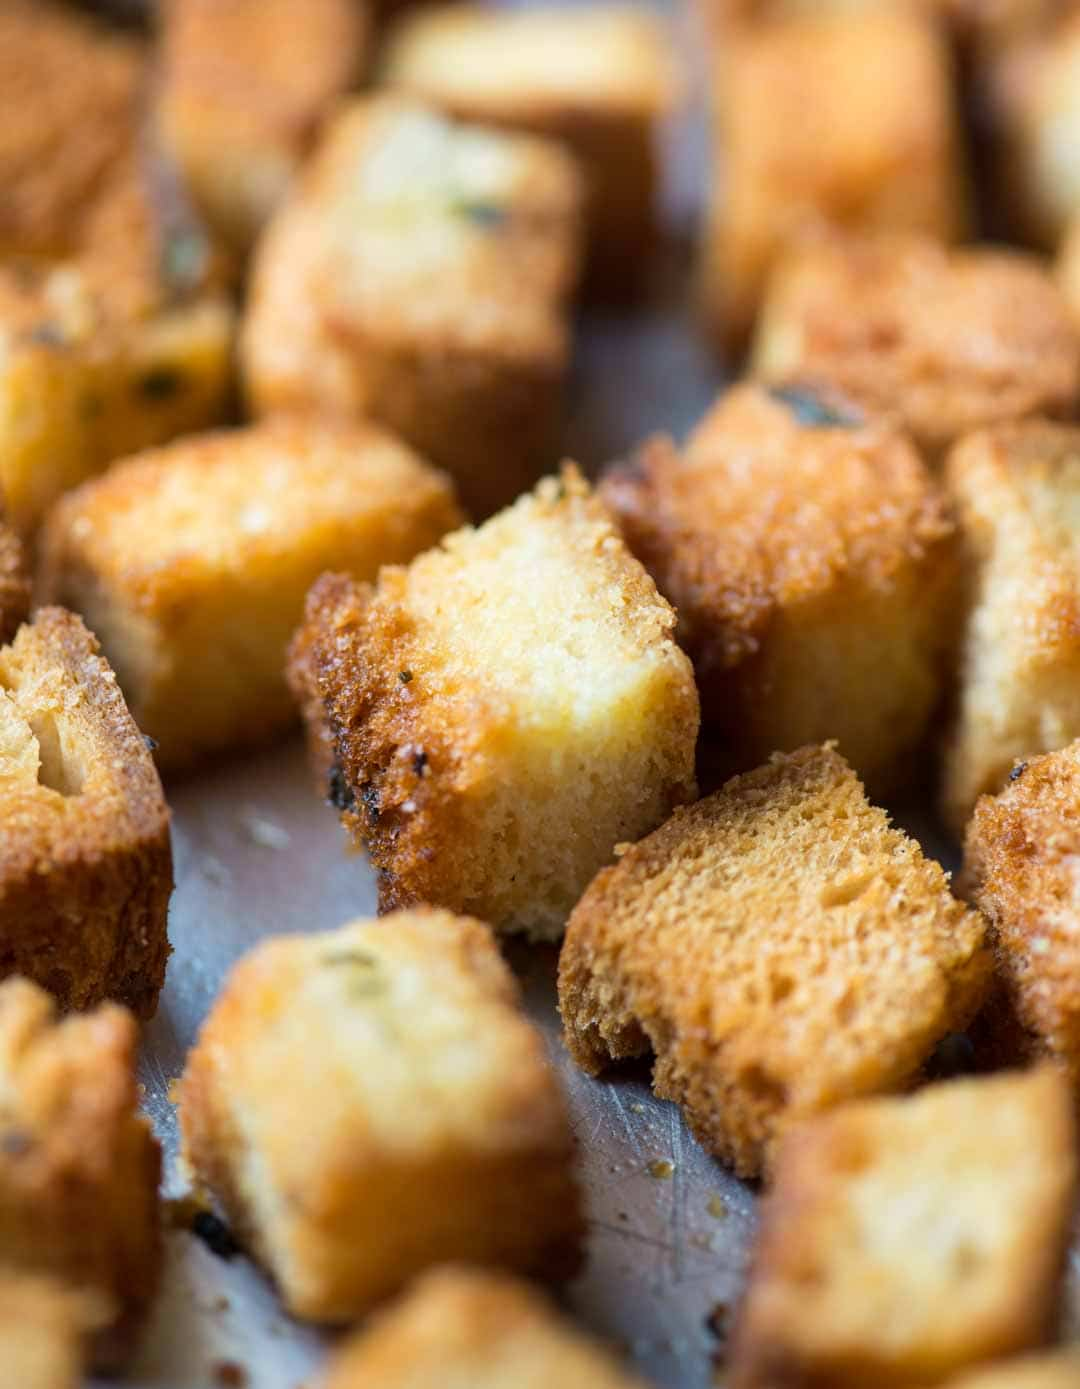 These buttery Crunchy homemade croutons are going to be a game changer for your soups and salads. Easy to make, tastes amazing and can be made in different flavours.